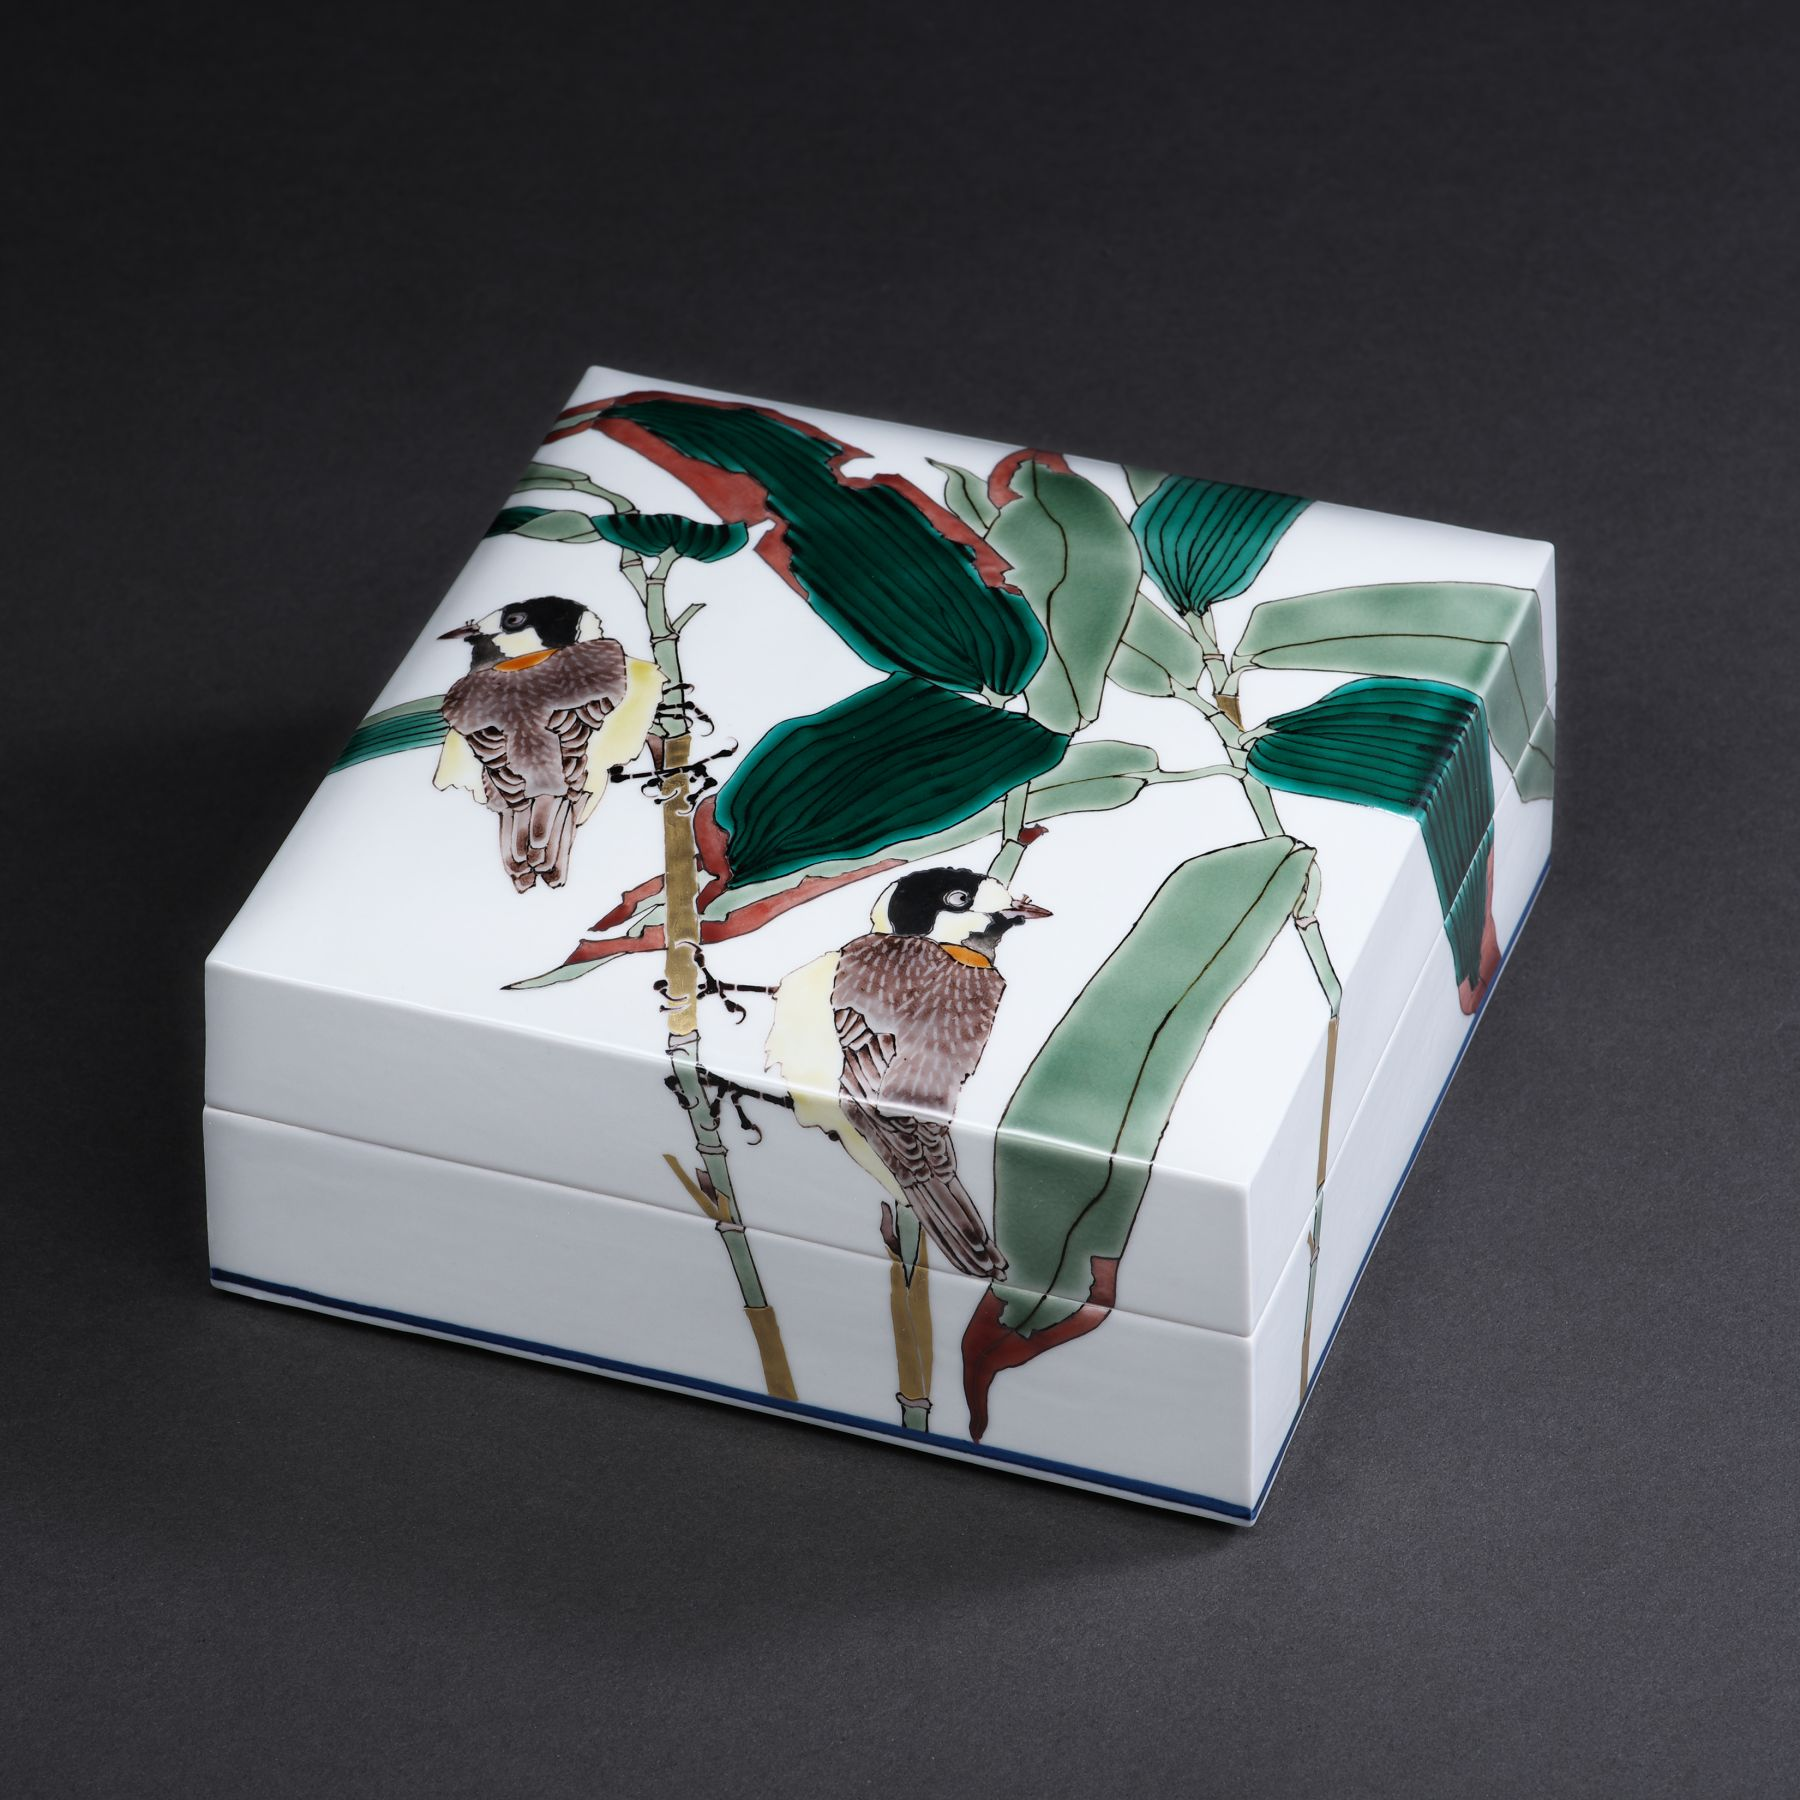 Takegoshi Jun (b. 1948), Porcelain covered box depicting titmice and bamboo